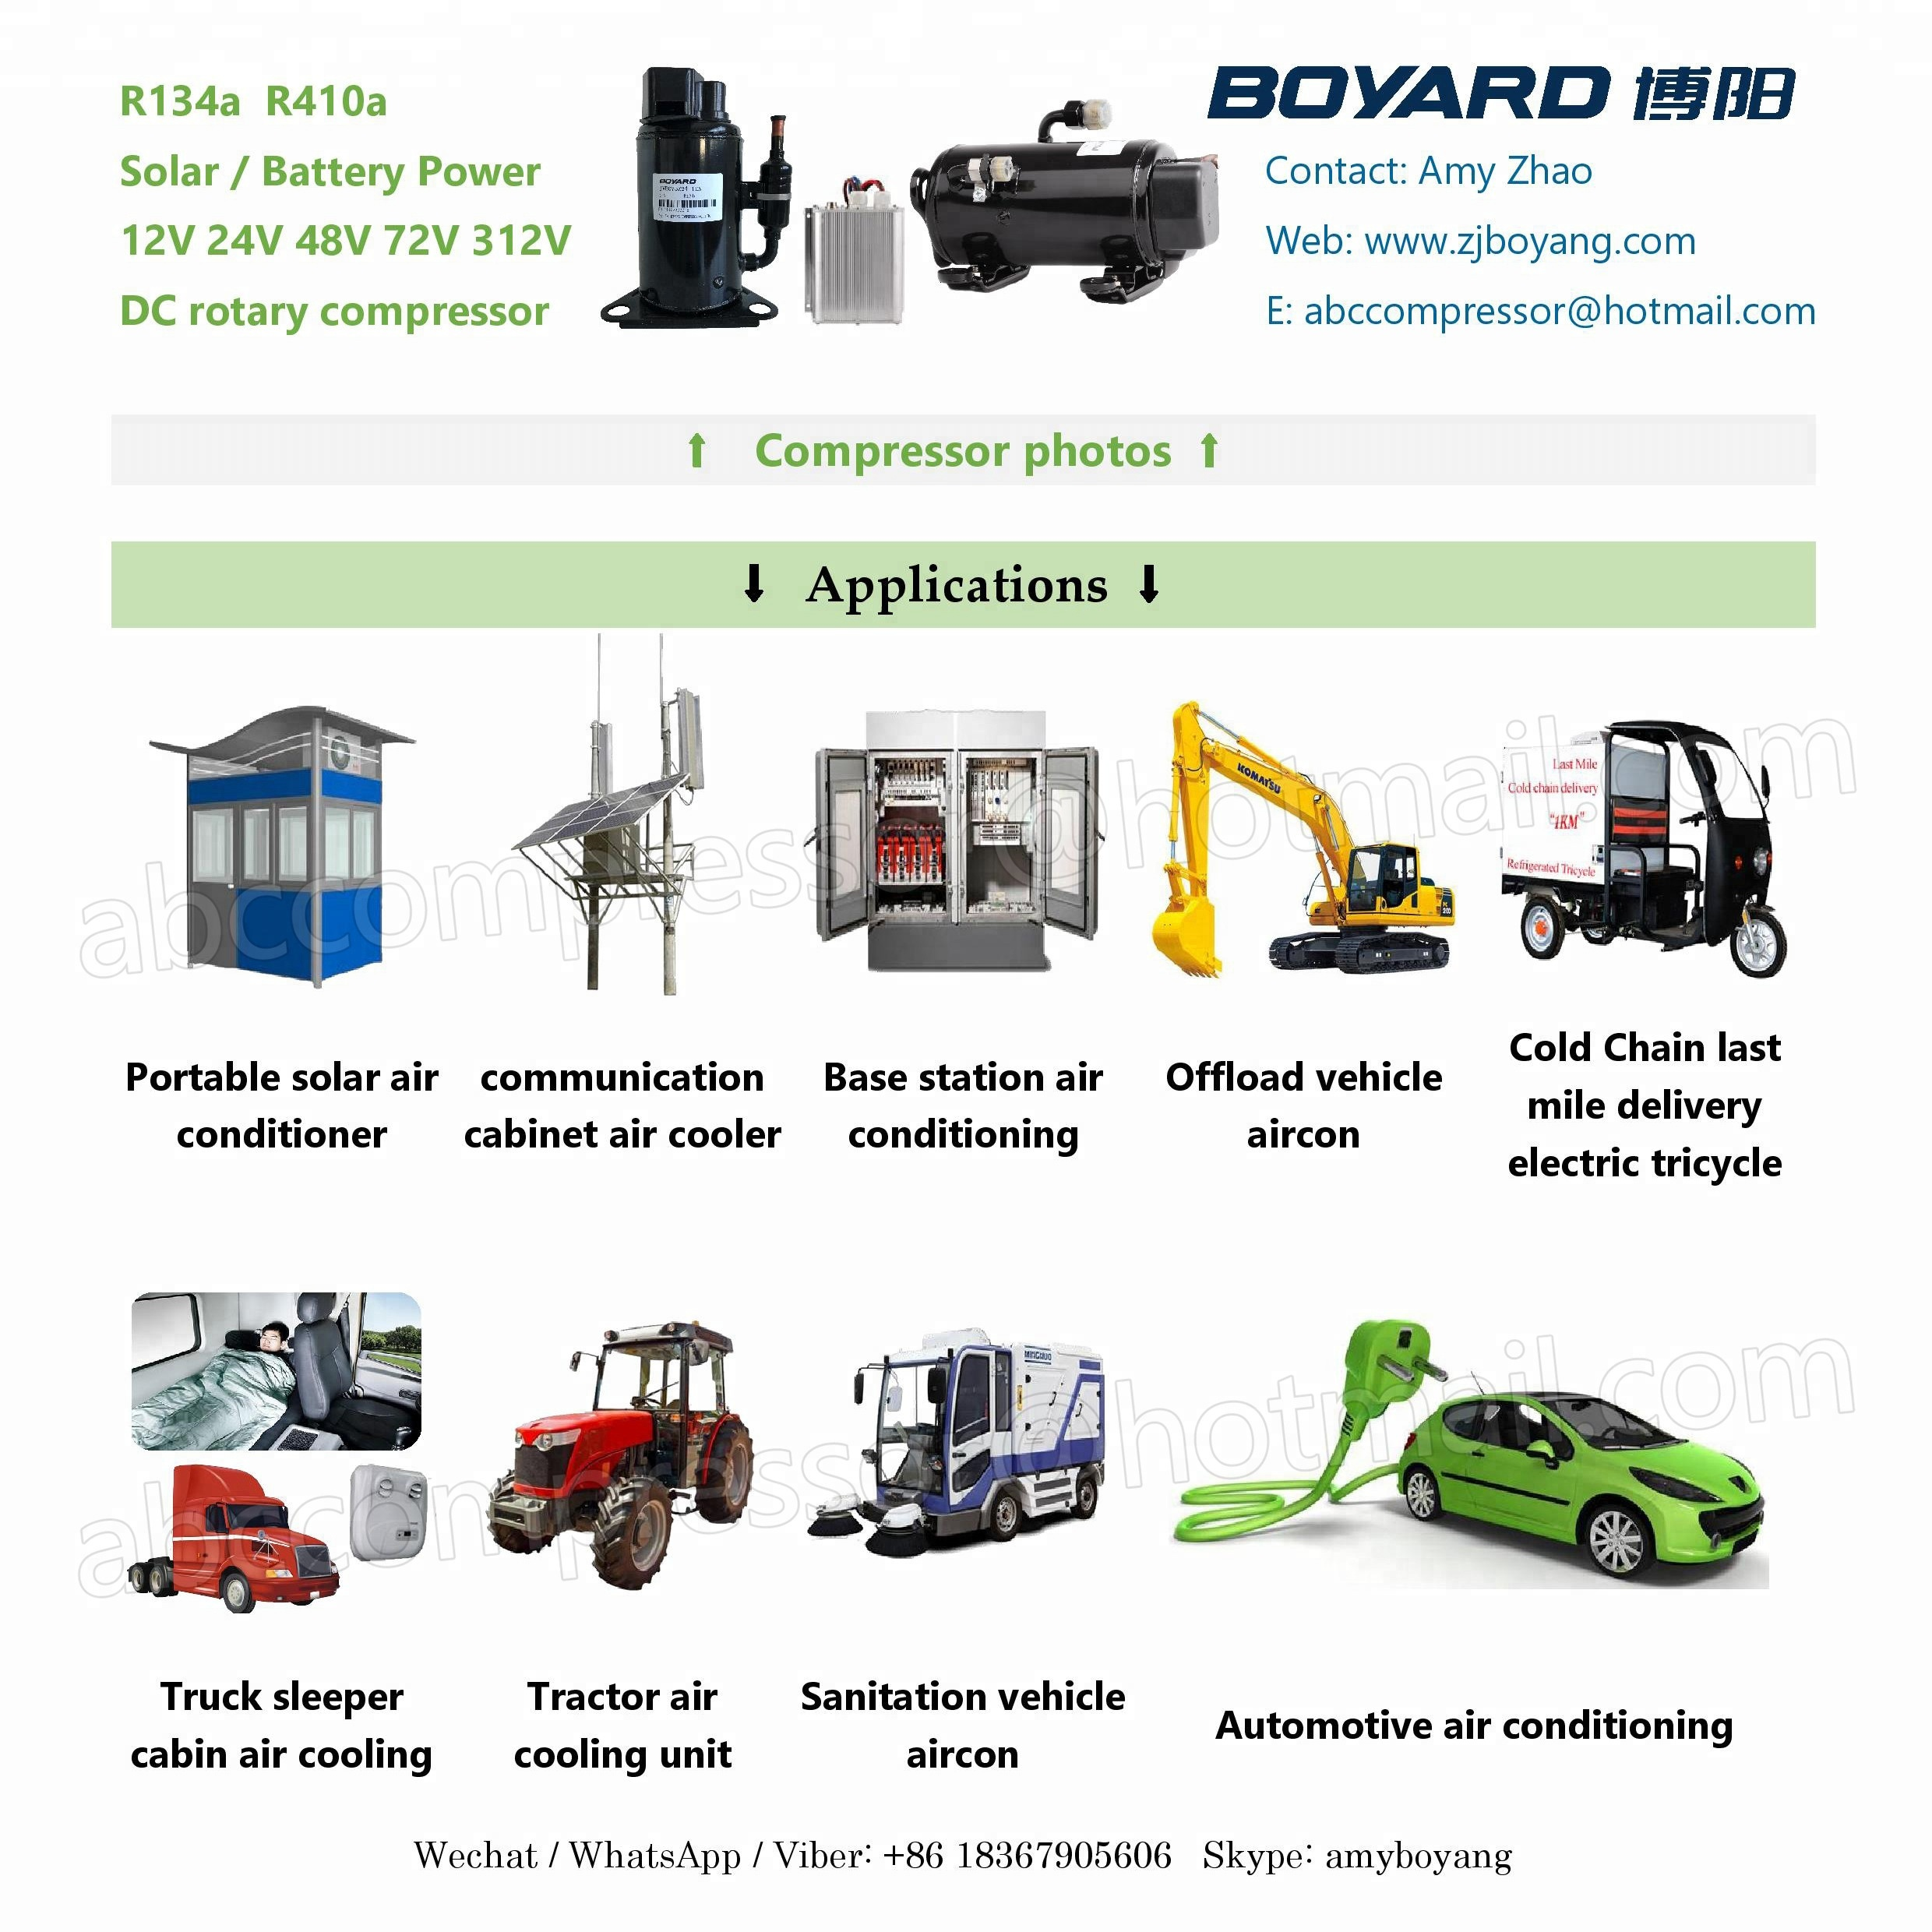 boyard hb075z12 8j12v dc air conditioner compressor 3000btu for Truck tracotor construction machinery excavator air conditioner